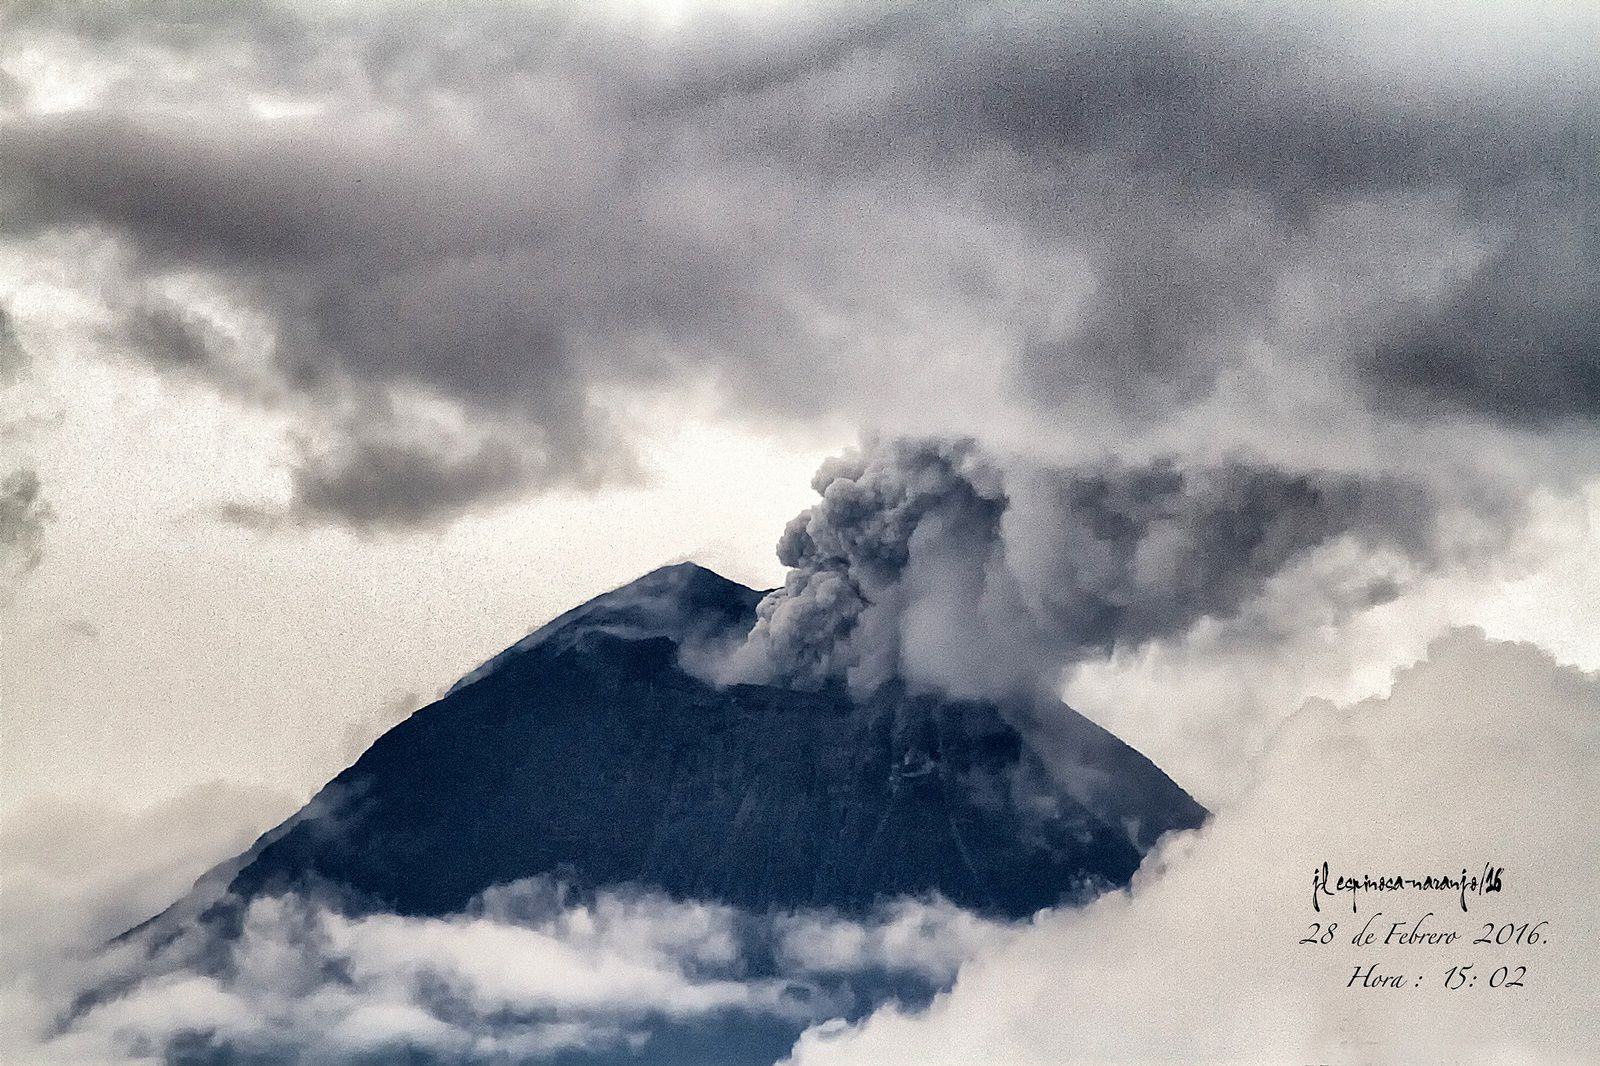 Last clear view of the top of Tungurahua - photo Jose Luis Espinosa-Naranjo 02.28.2016 / 3:02 p.m. loc.